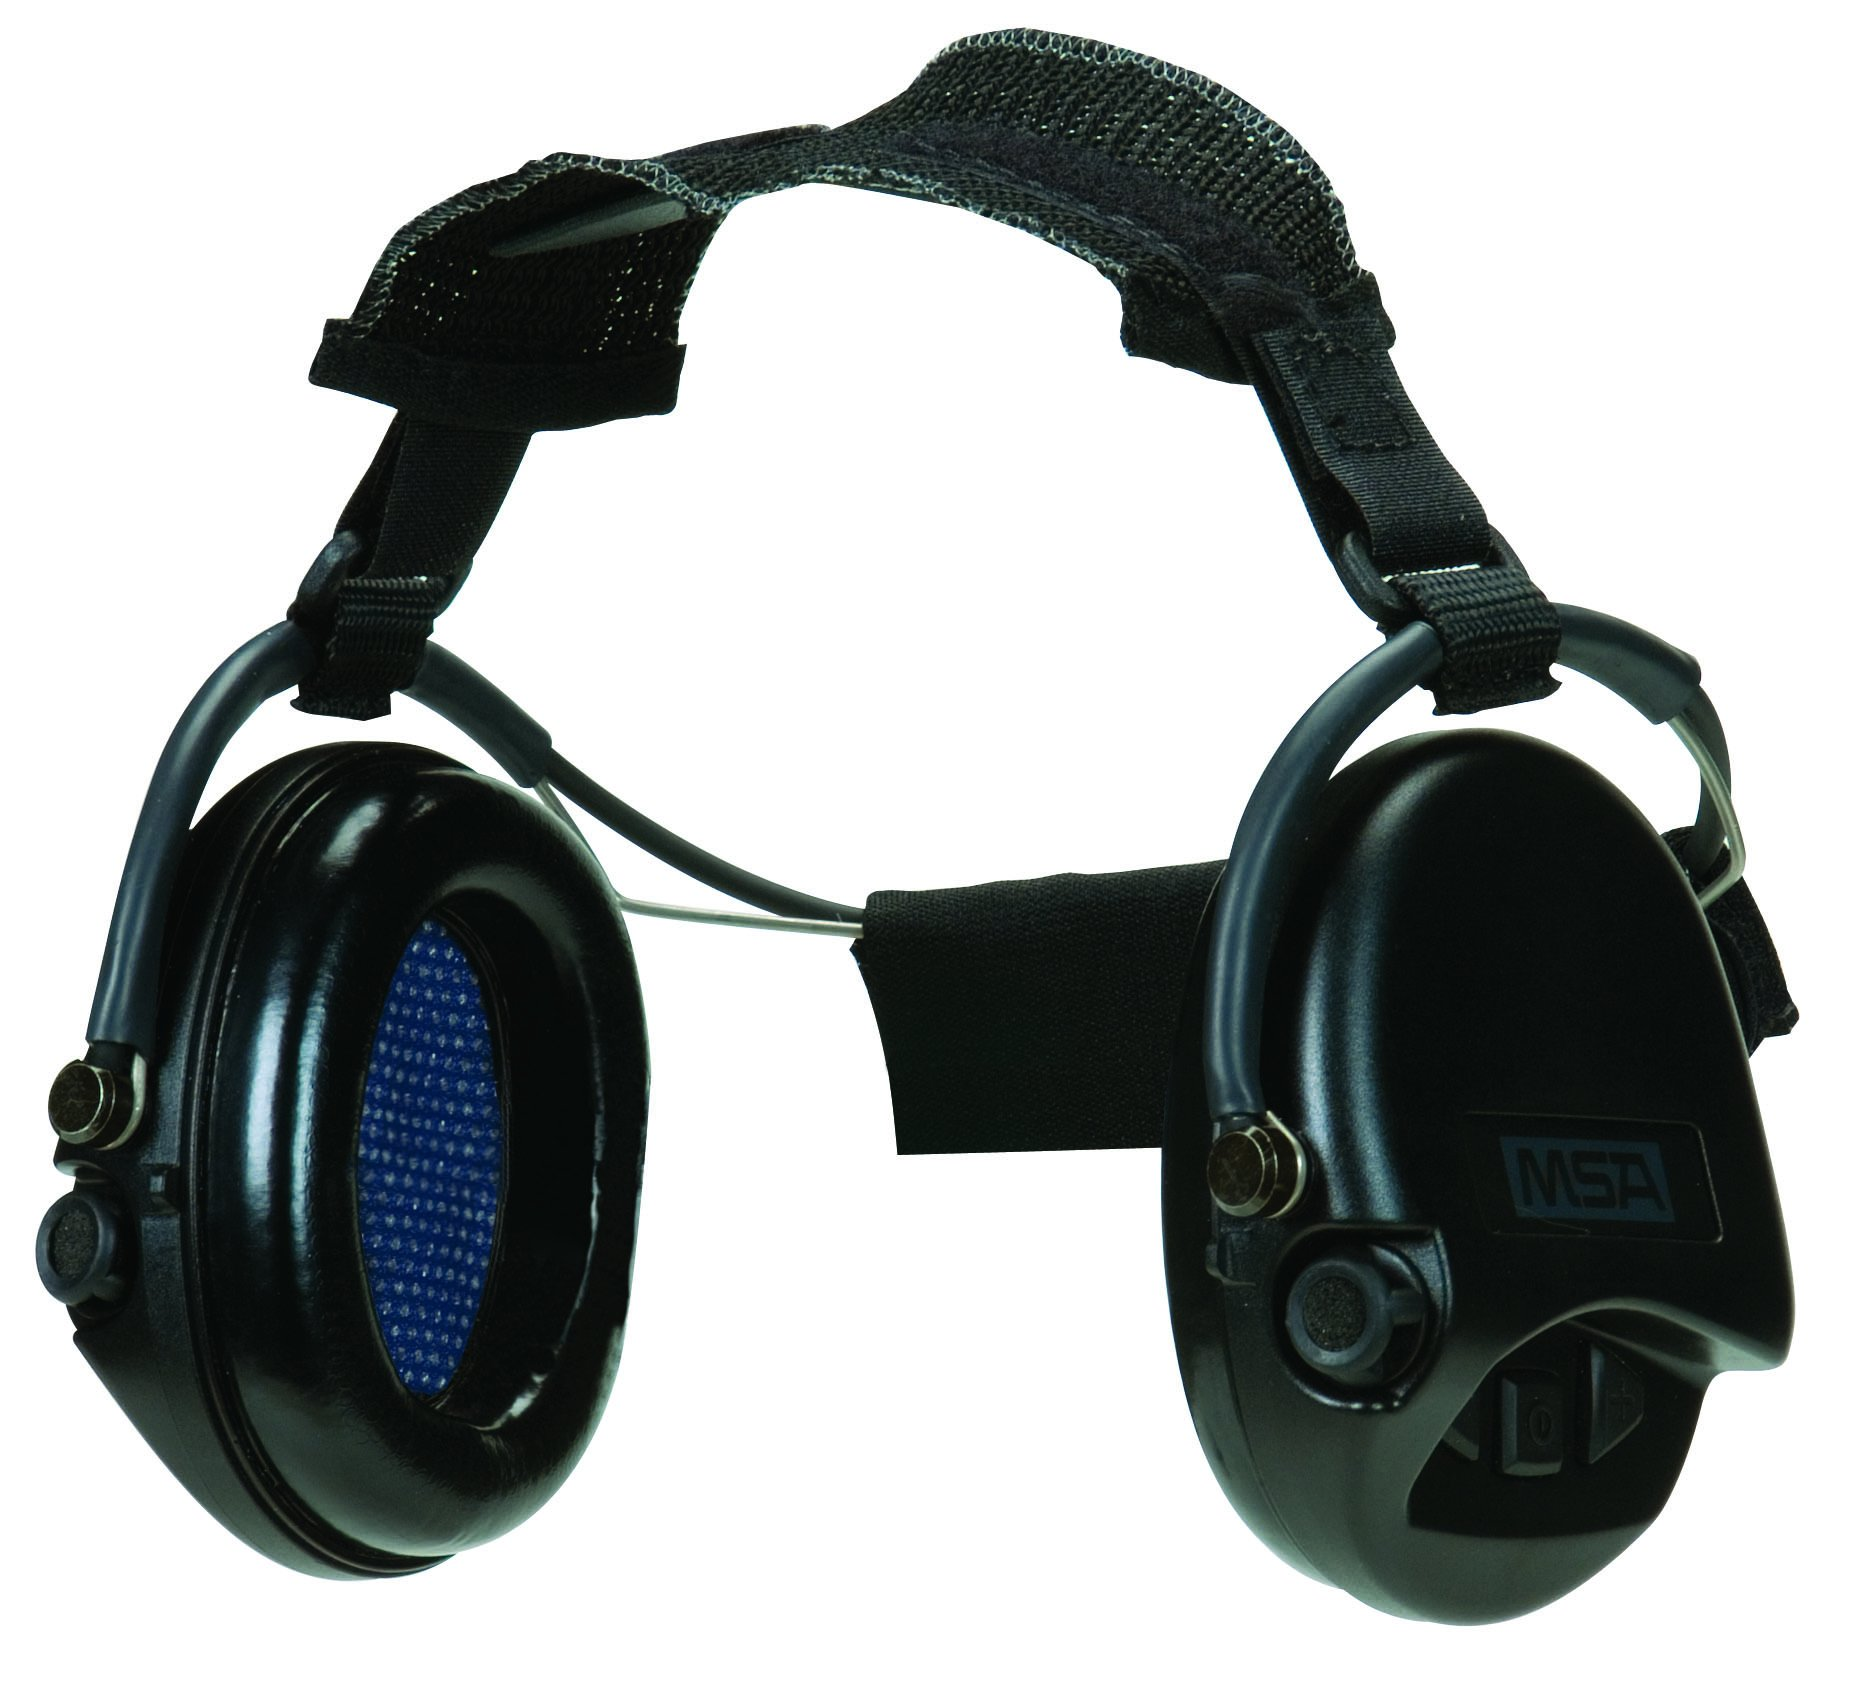 MSA Safety 10079966 Supreme Pro Neckband Model Earmuff with Black Neckband